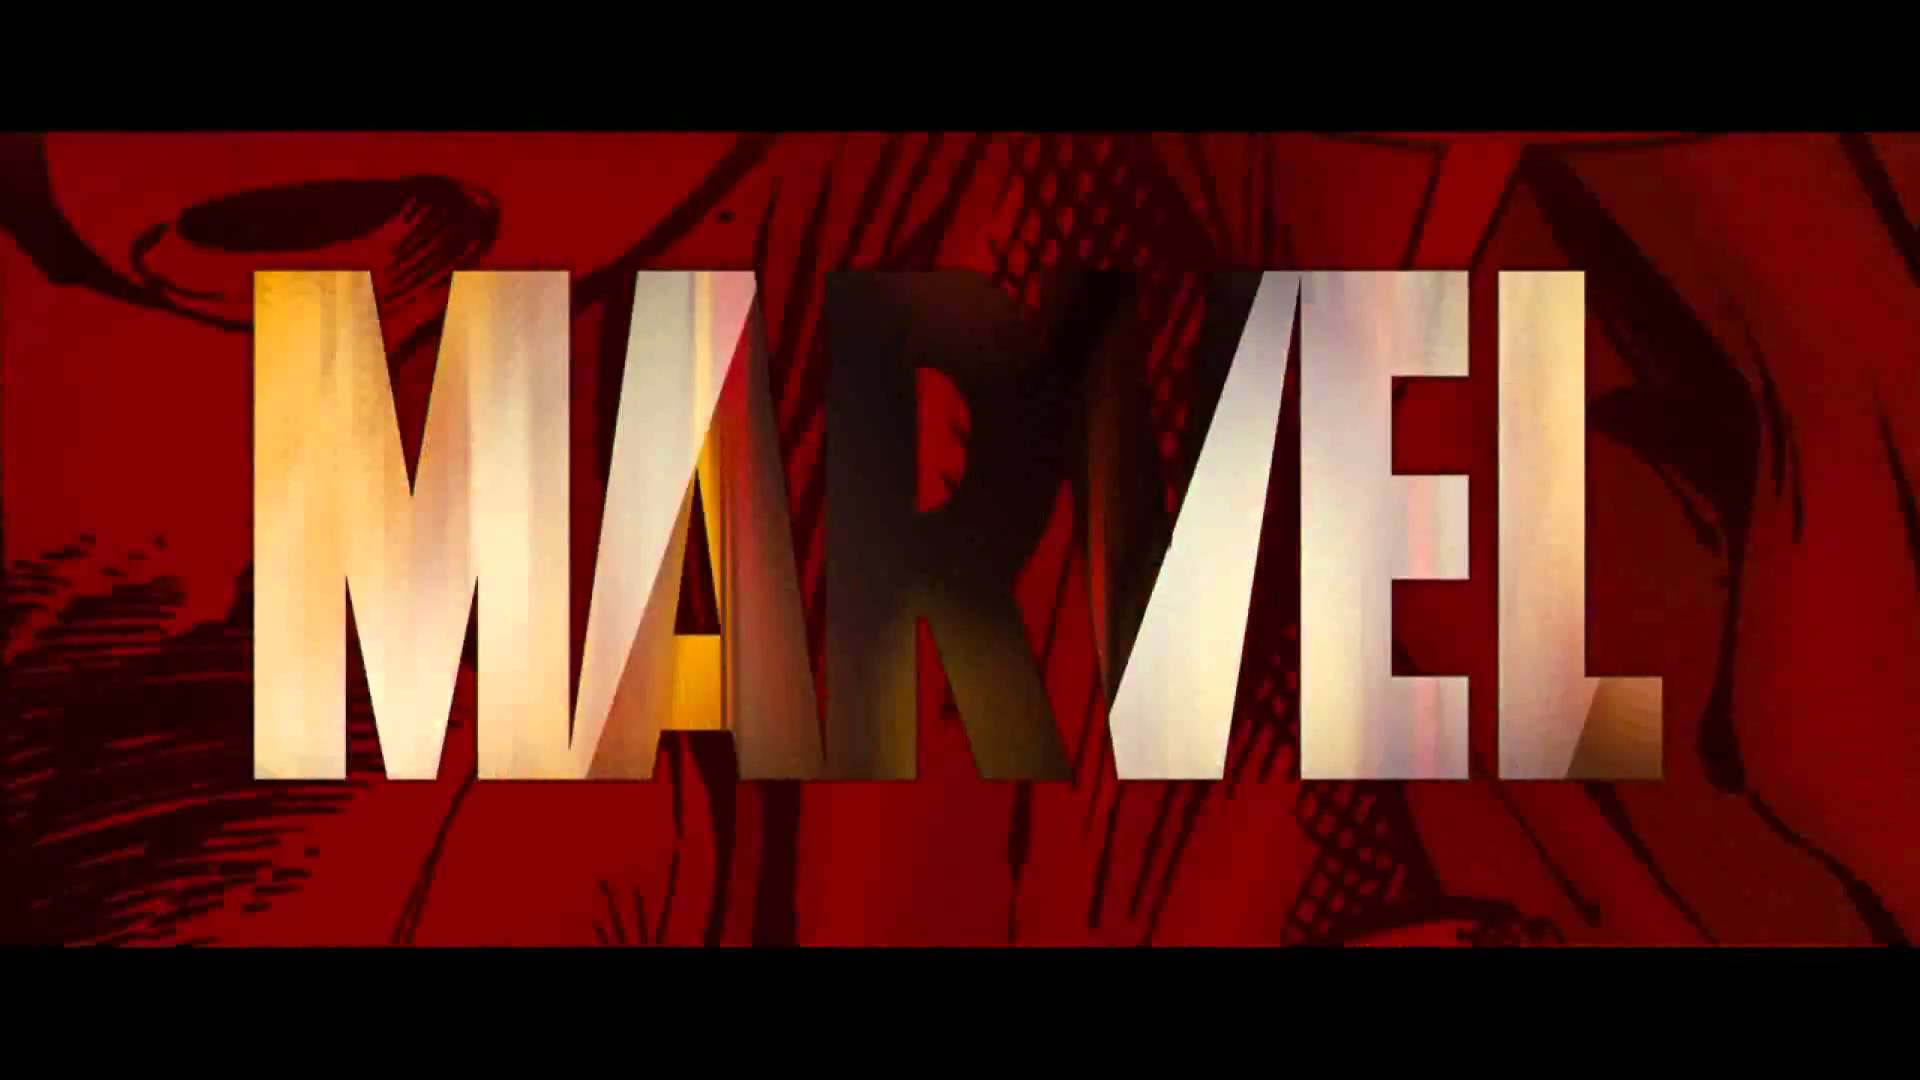 Marvel Logo The Art Mad Wallpapers 1920x1080